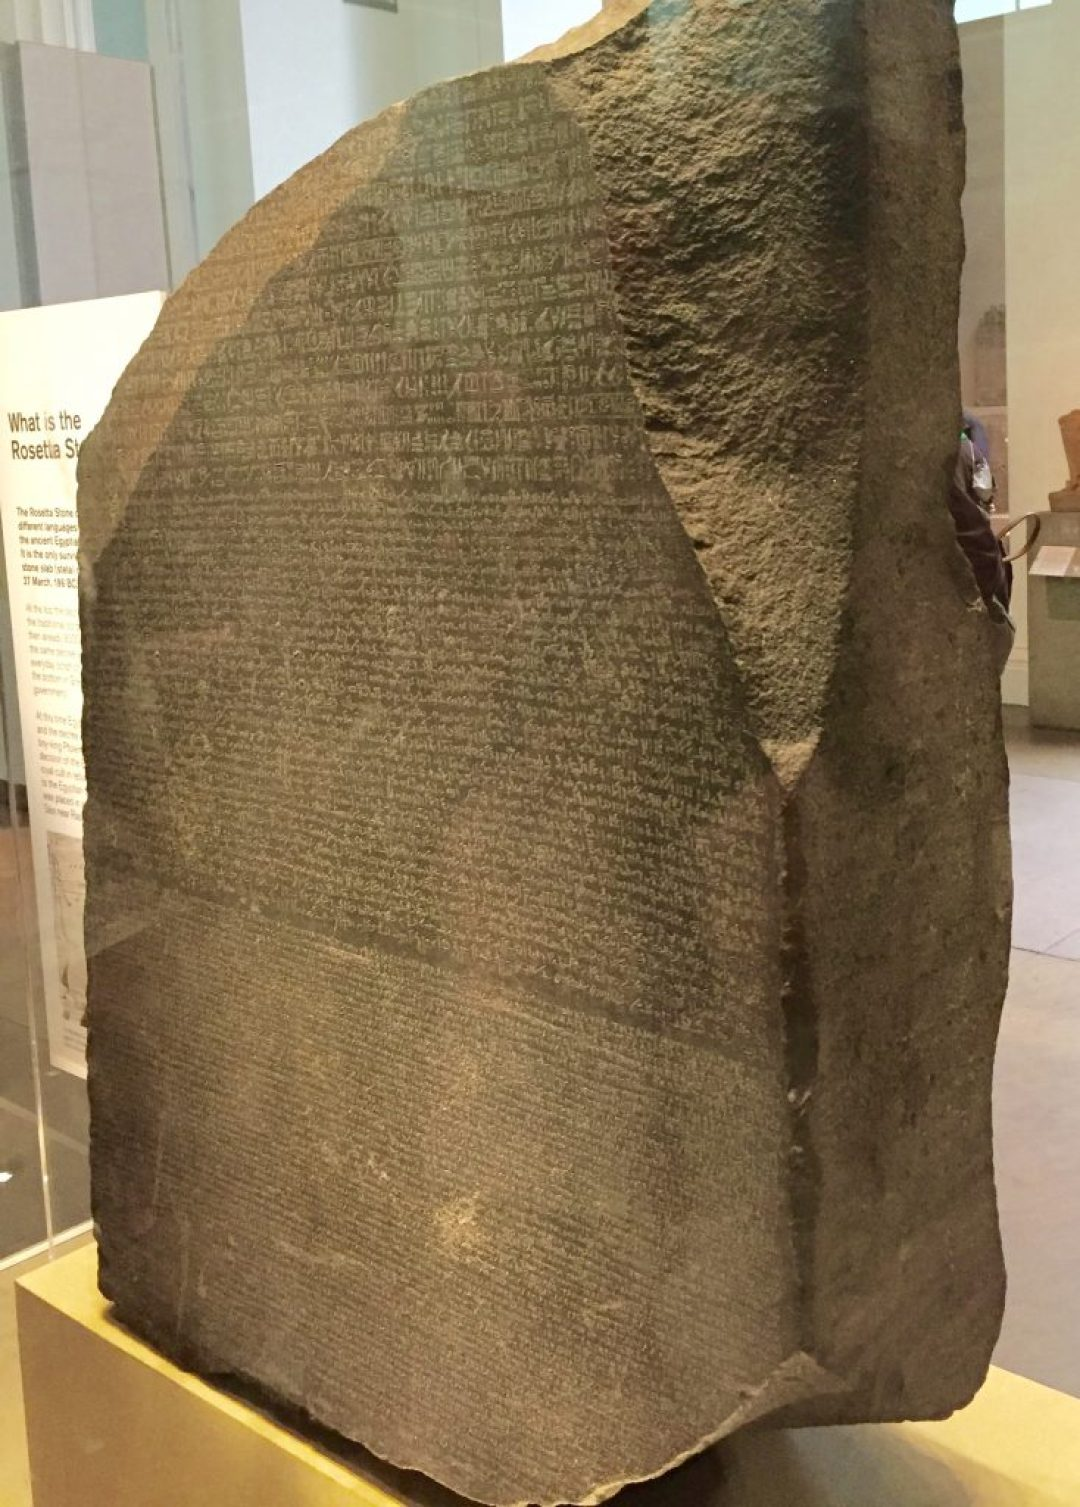 The Rosetta stone, which enabled Young and Champollion to decipher the Egyptian hieroglyphs.